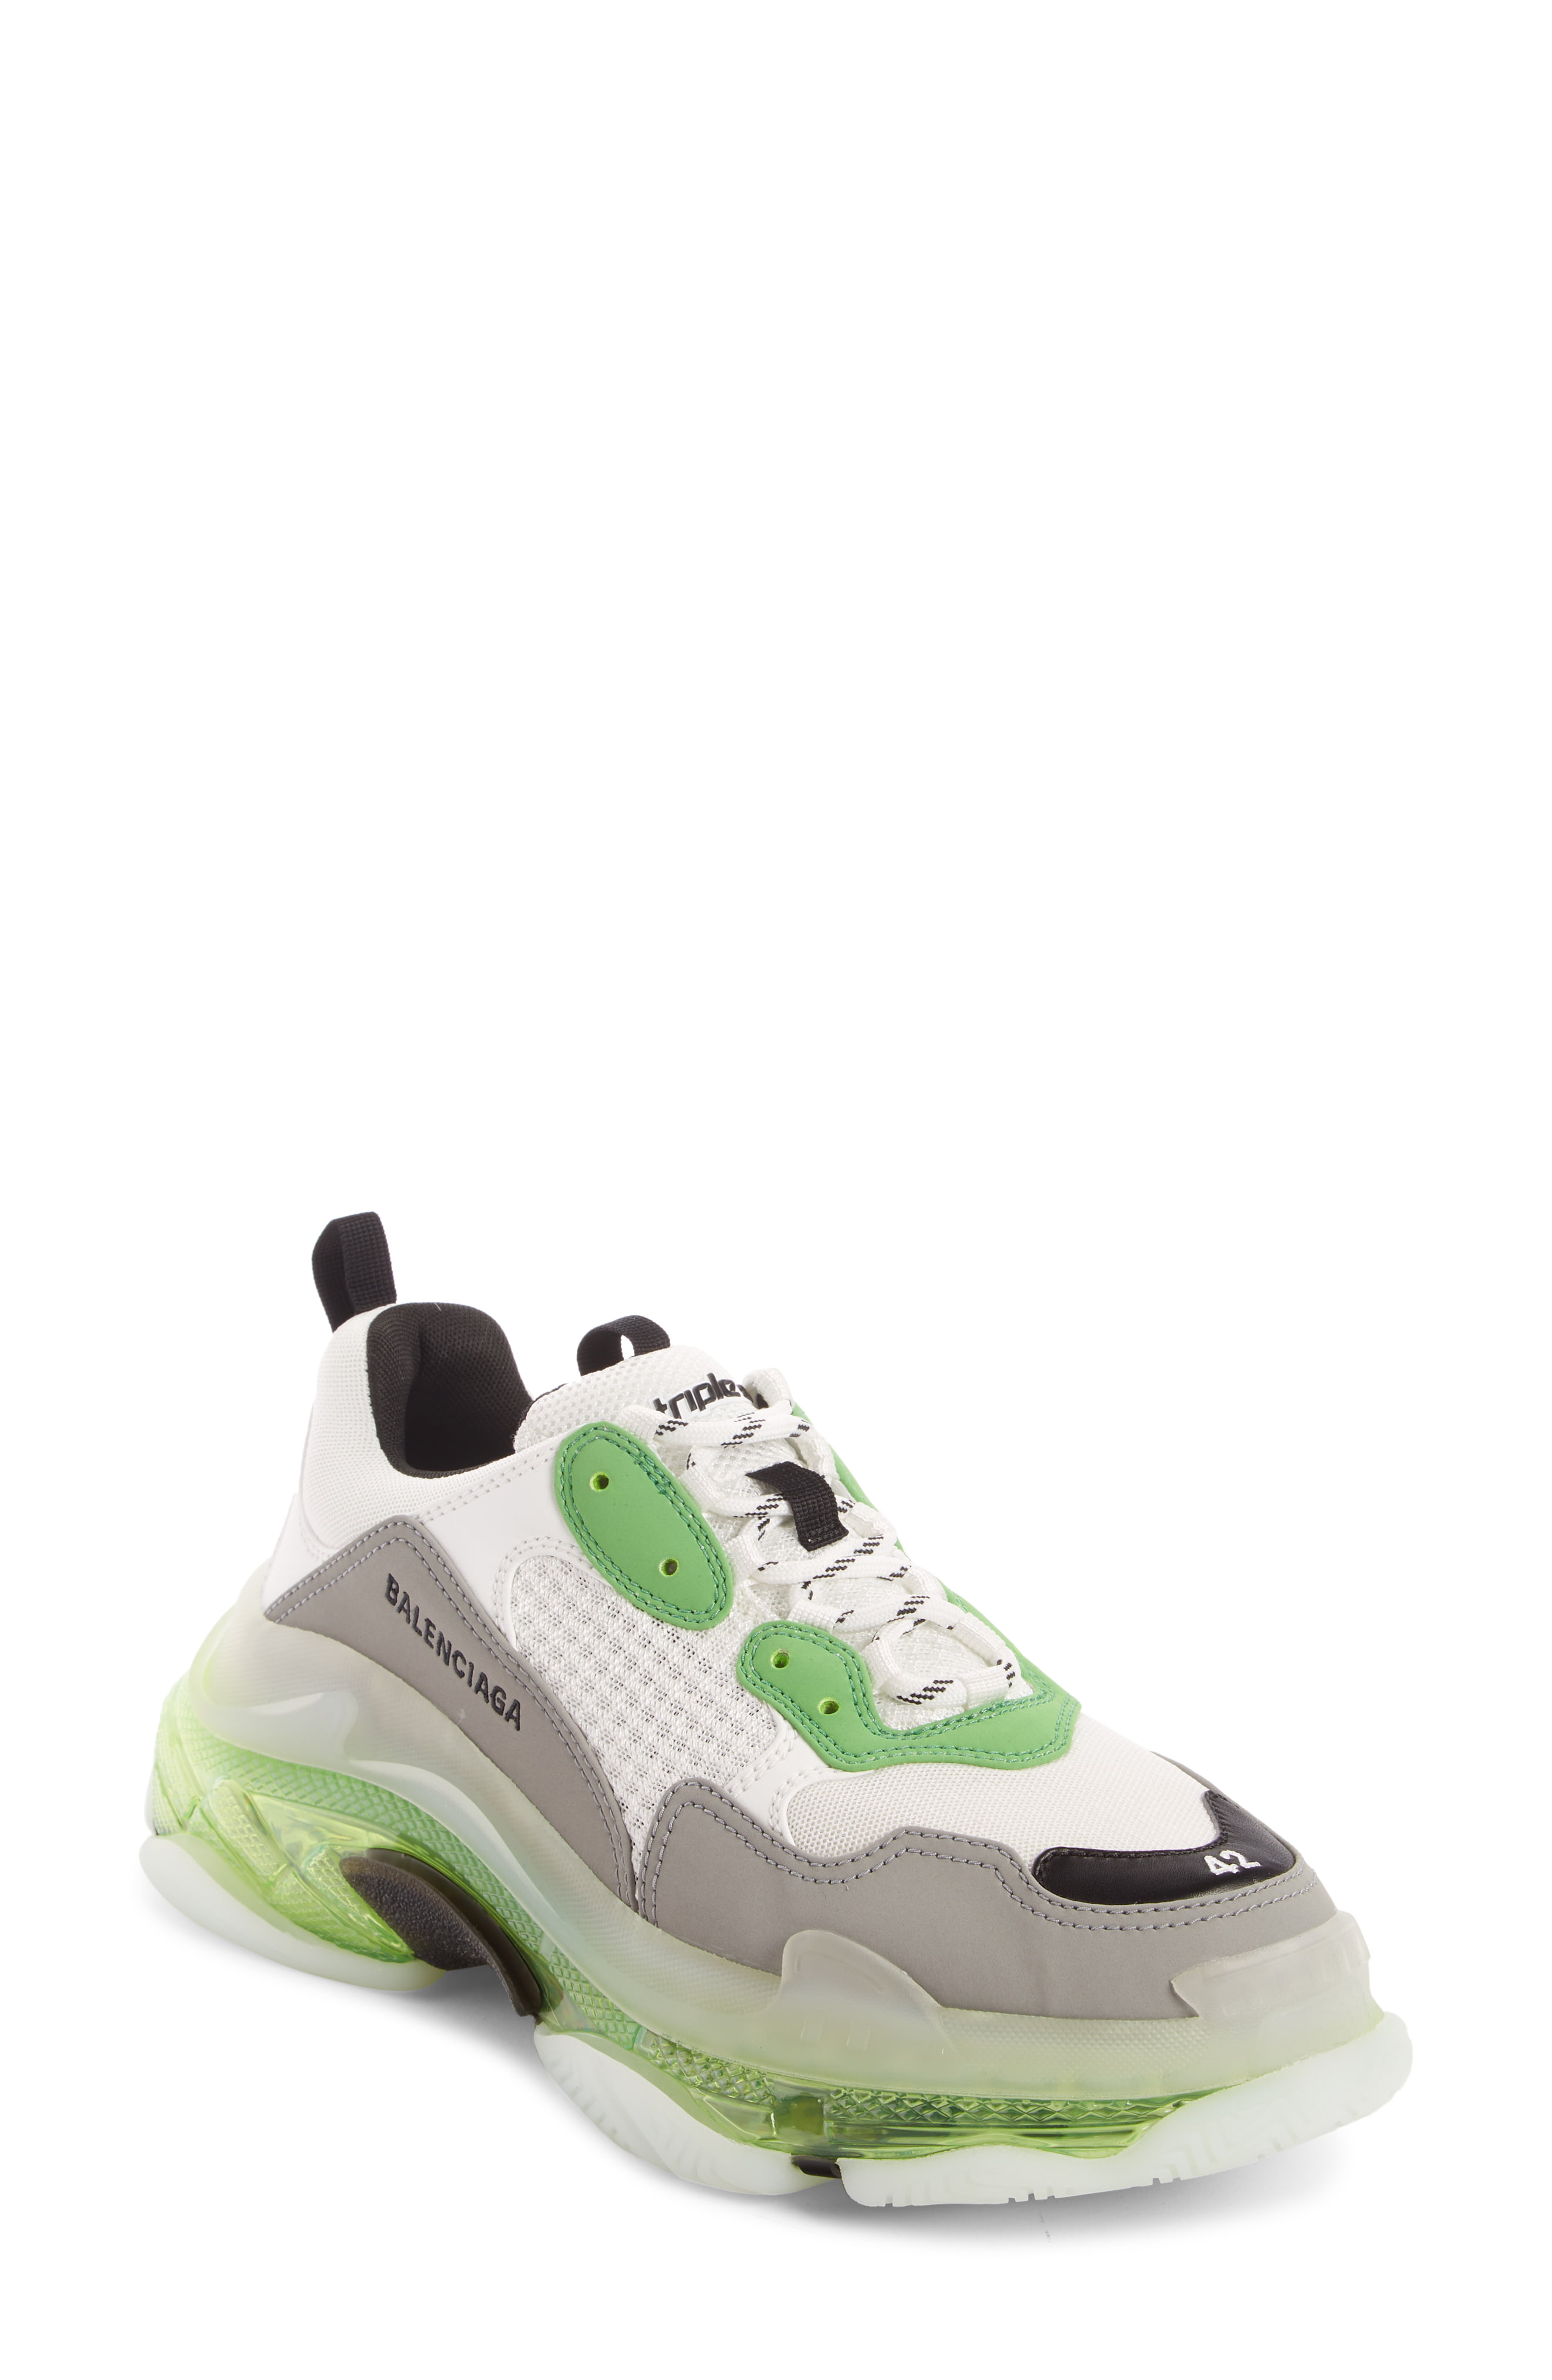 balenciaga shoes men